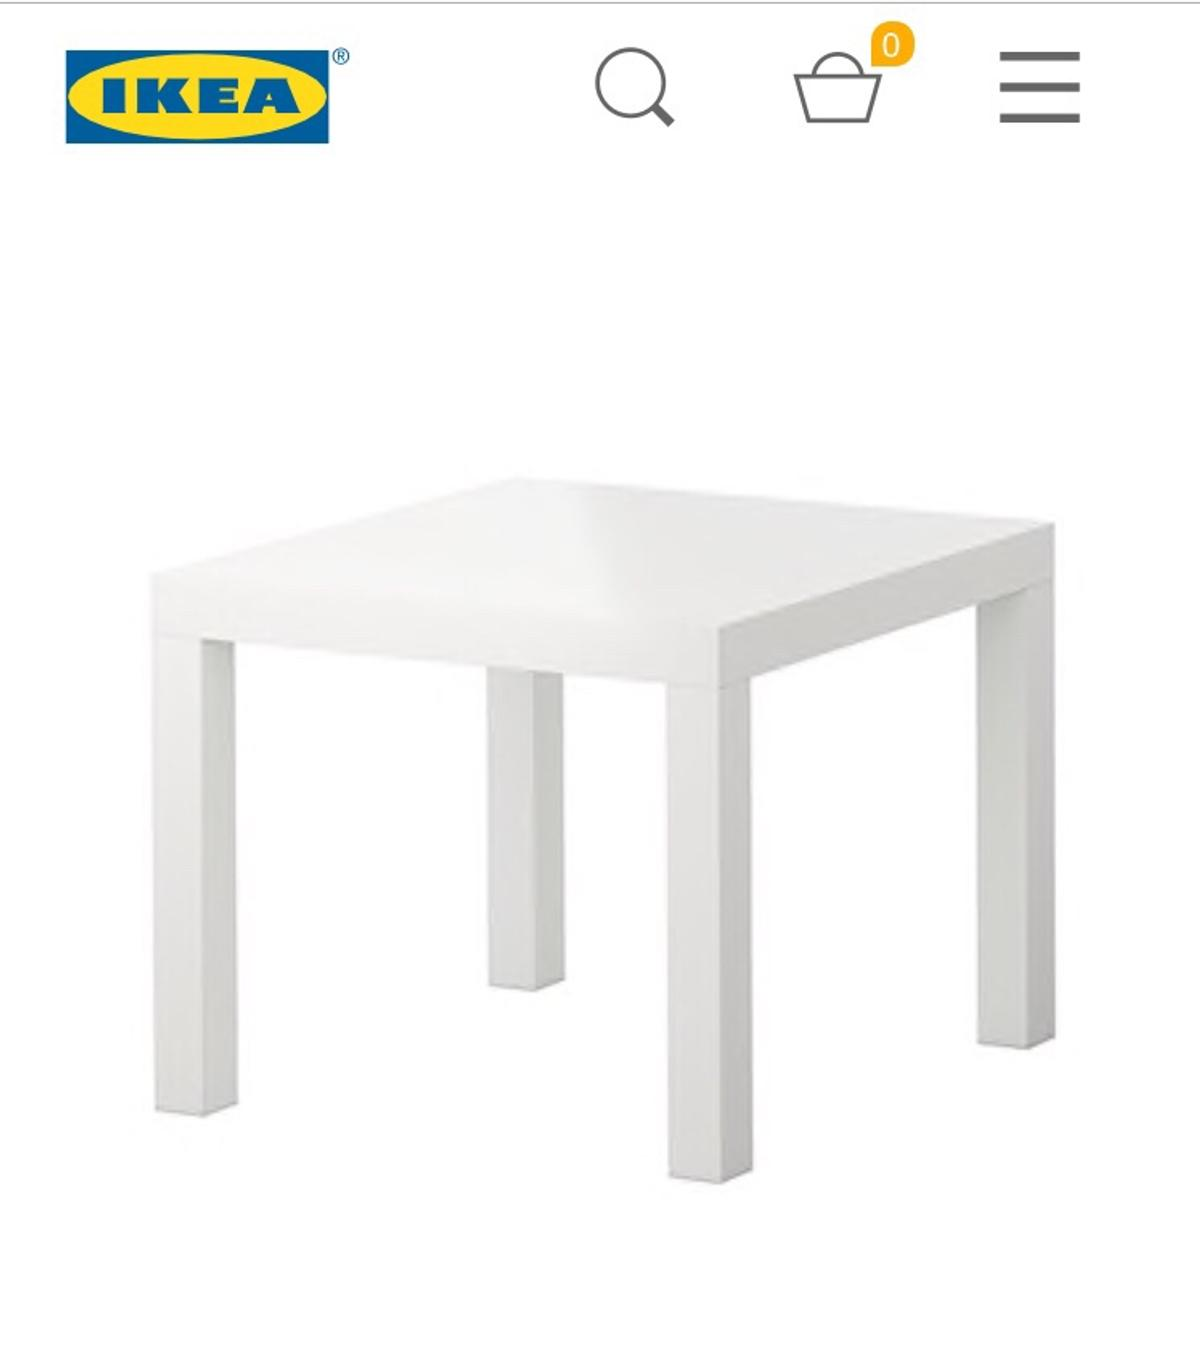 Ikea Side Table In Nw9 London For 2 00